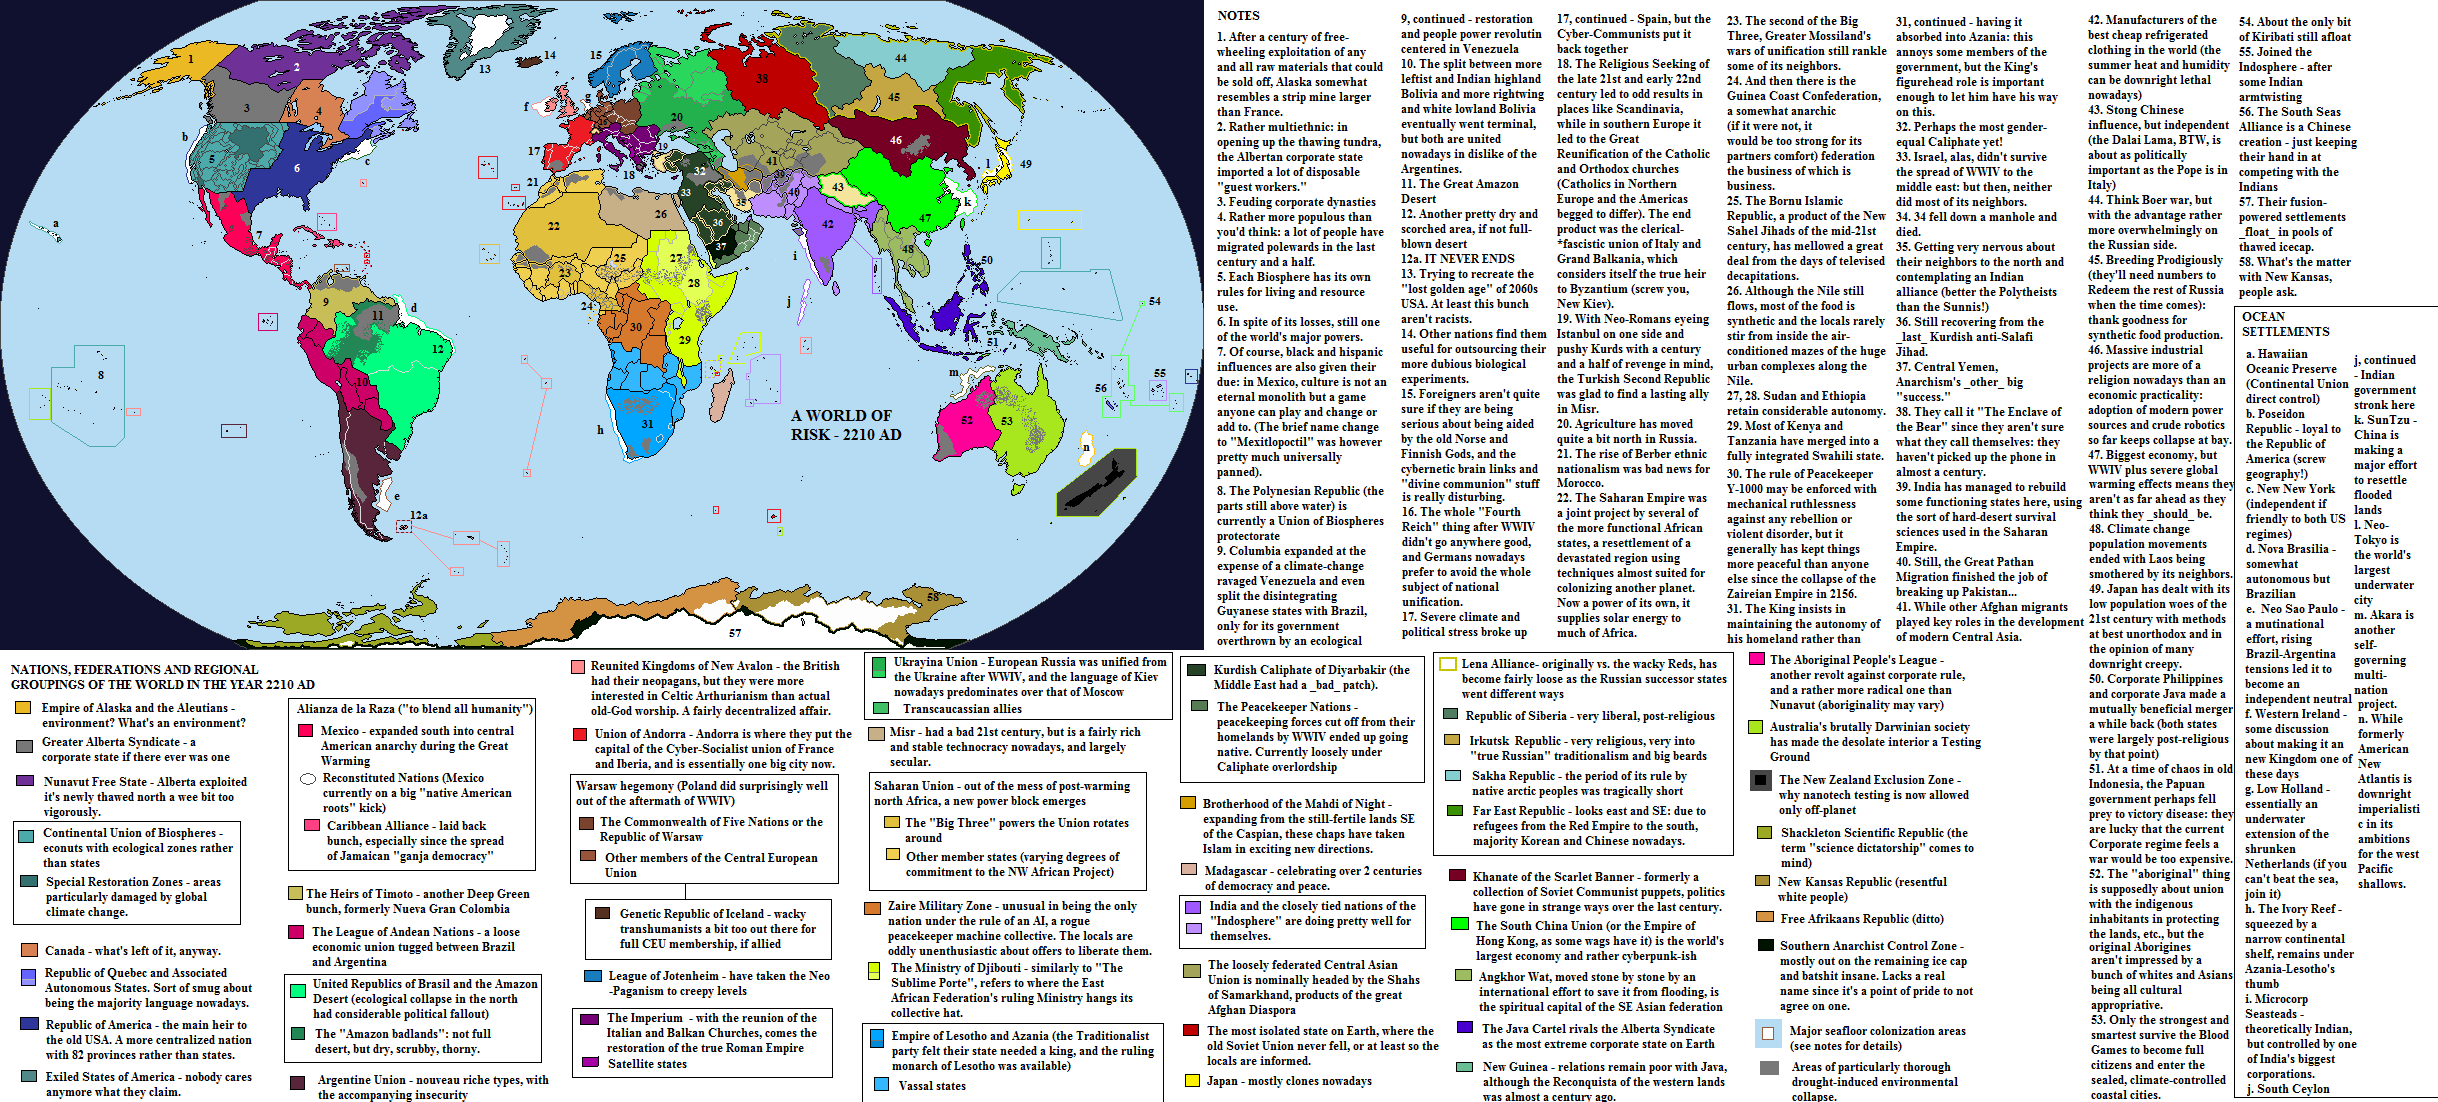 Risk 2210 AD by QuantumBranching on DeviantArt